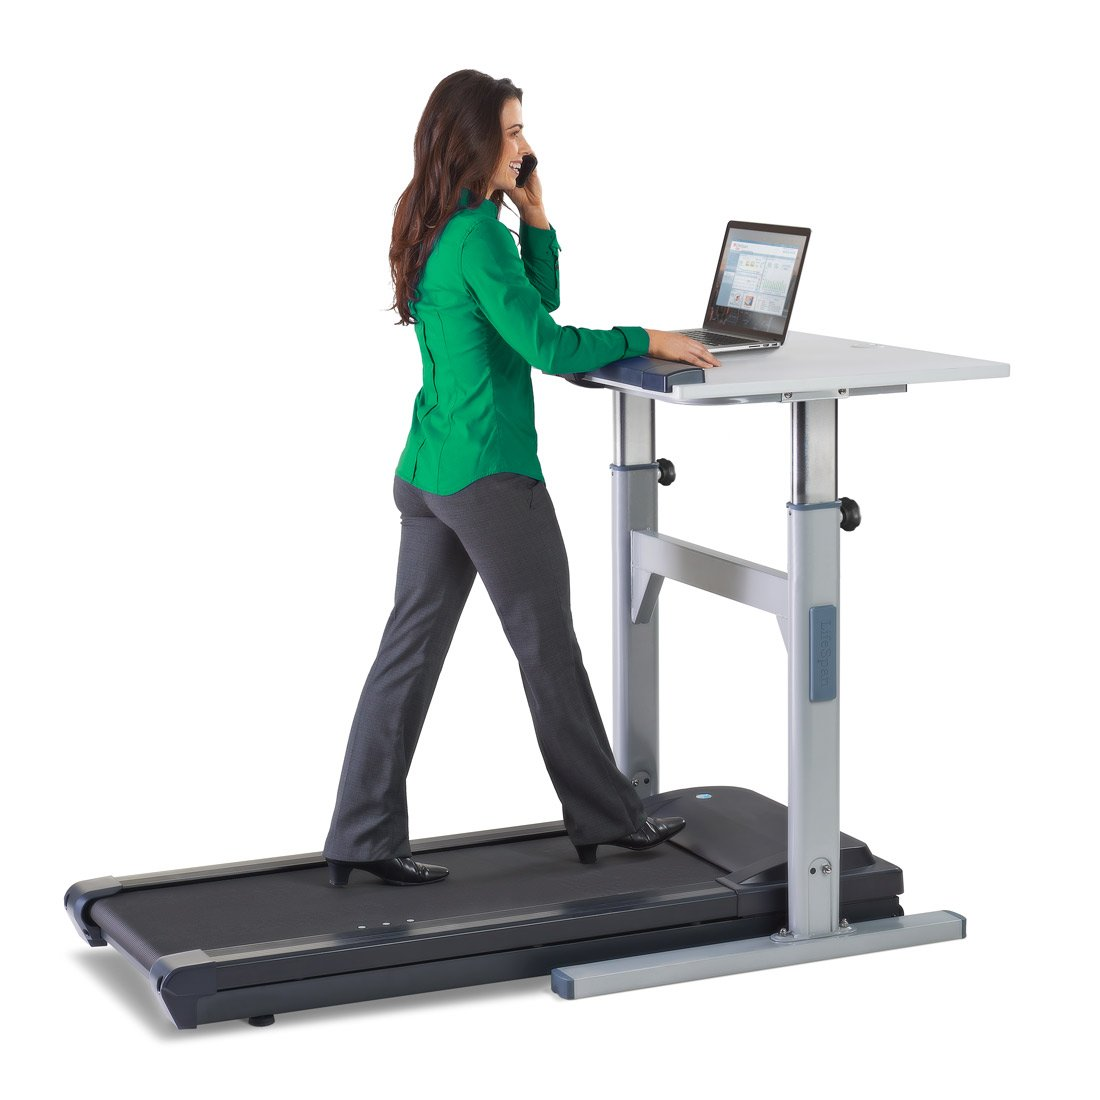 Treadmill For Desk At Work: Treadmill & Standing Desks